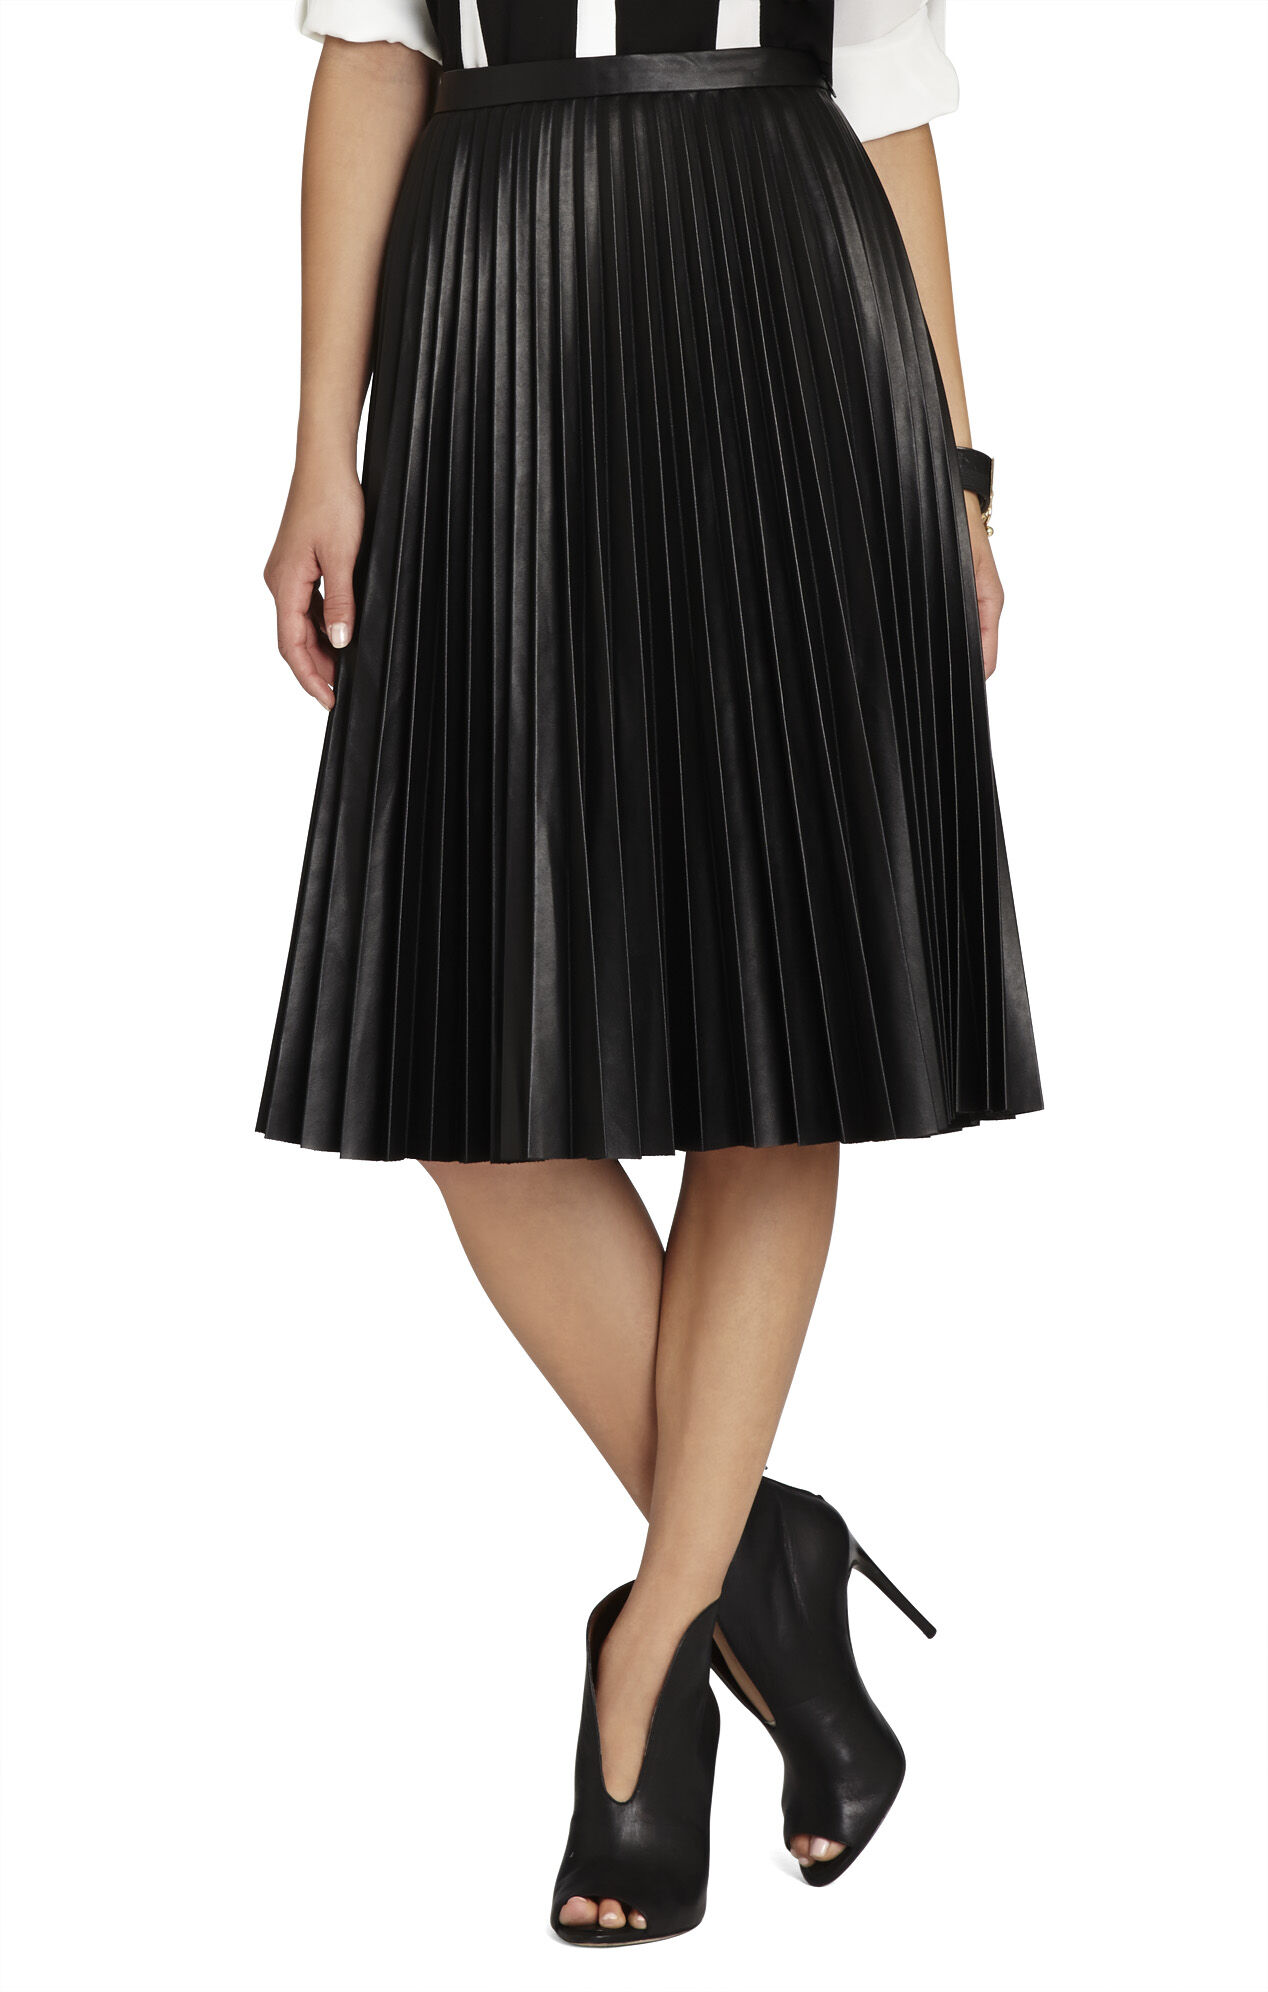 Elsa Sunburst-Pleated Skirt